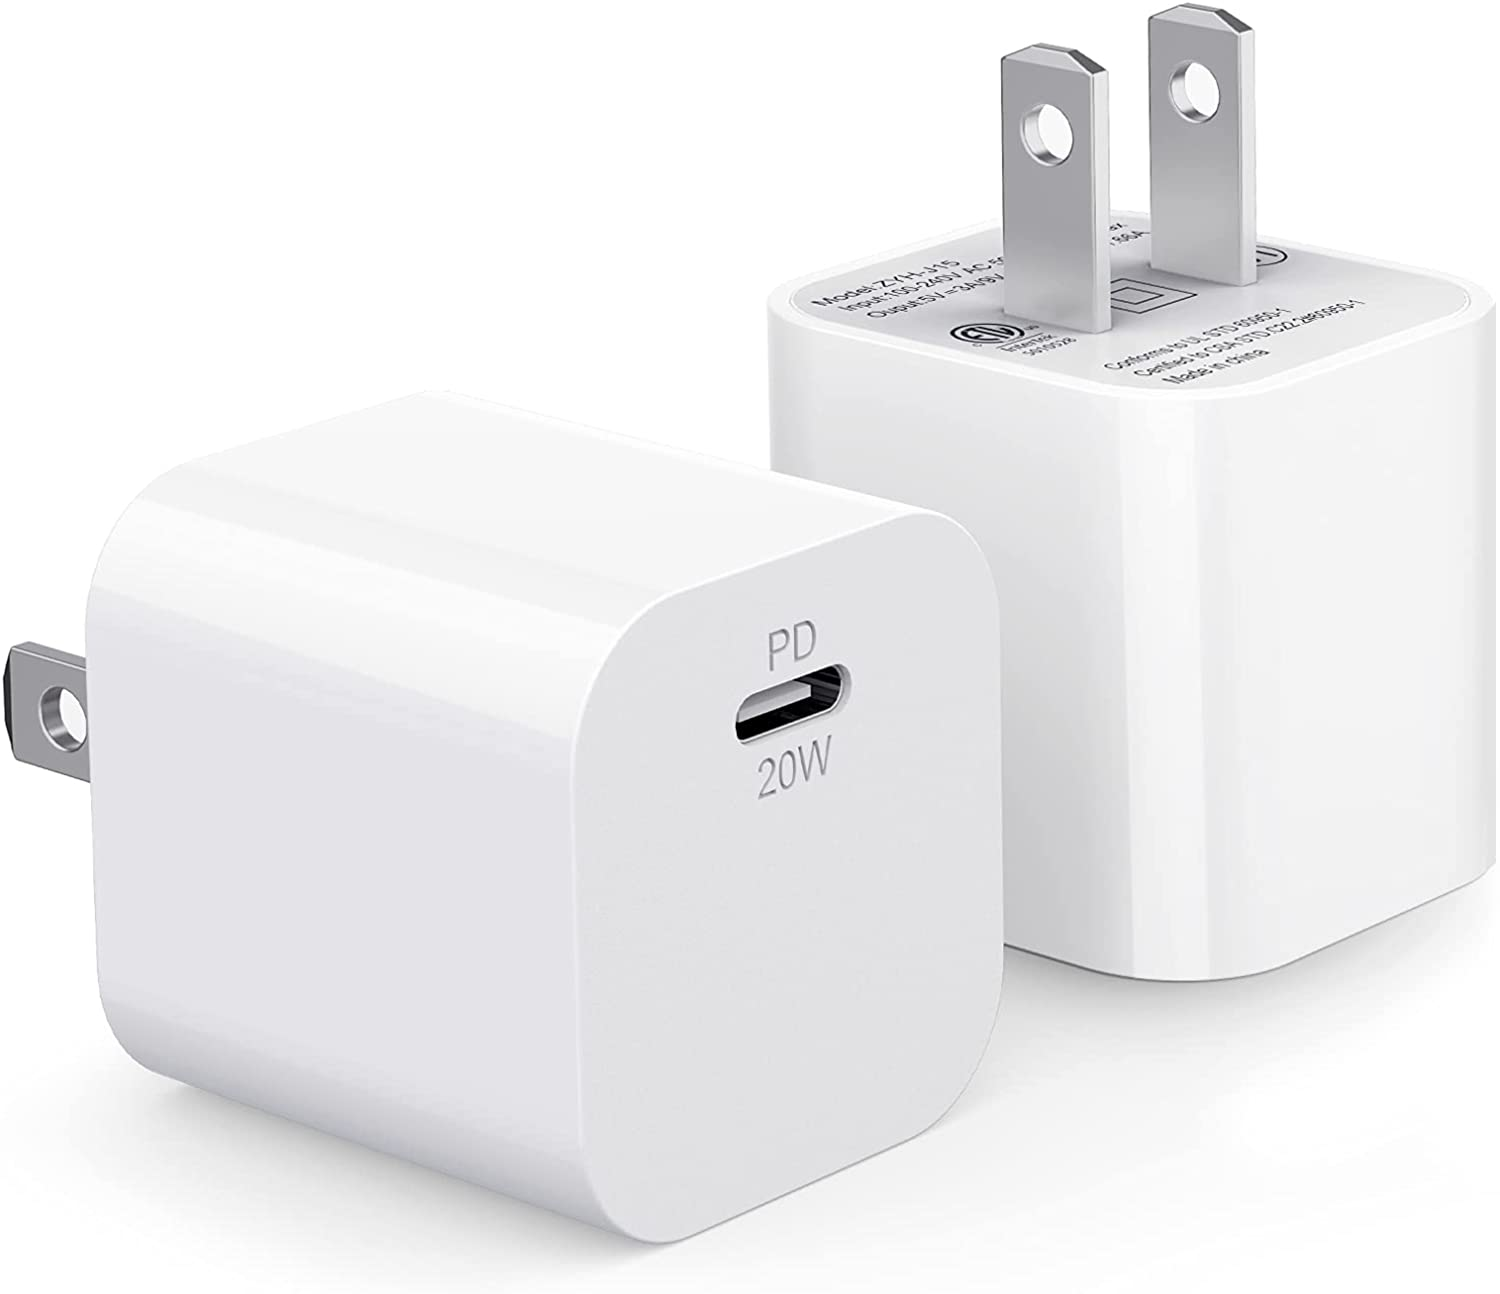 iPhone 12 Charger Fast Block [Apple MFi Certified] USB C Charger 2Pack Mini 20W PD Type C Power Adapter Plug Wall Charging for iPhone 12/12 Pro Max/12 Mini/11/11 Pro/11 Pro Max/SE2/ iPad Pro/iPad Air2